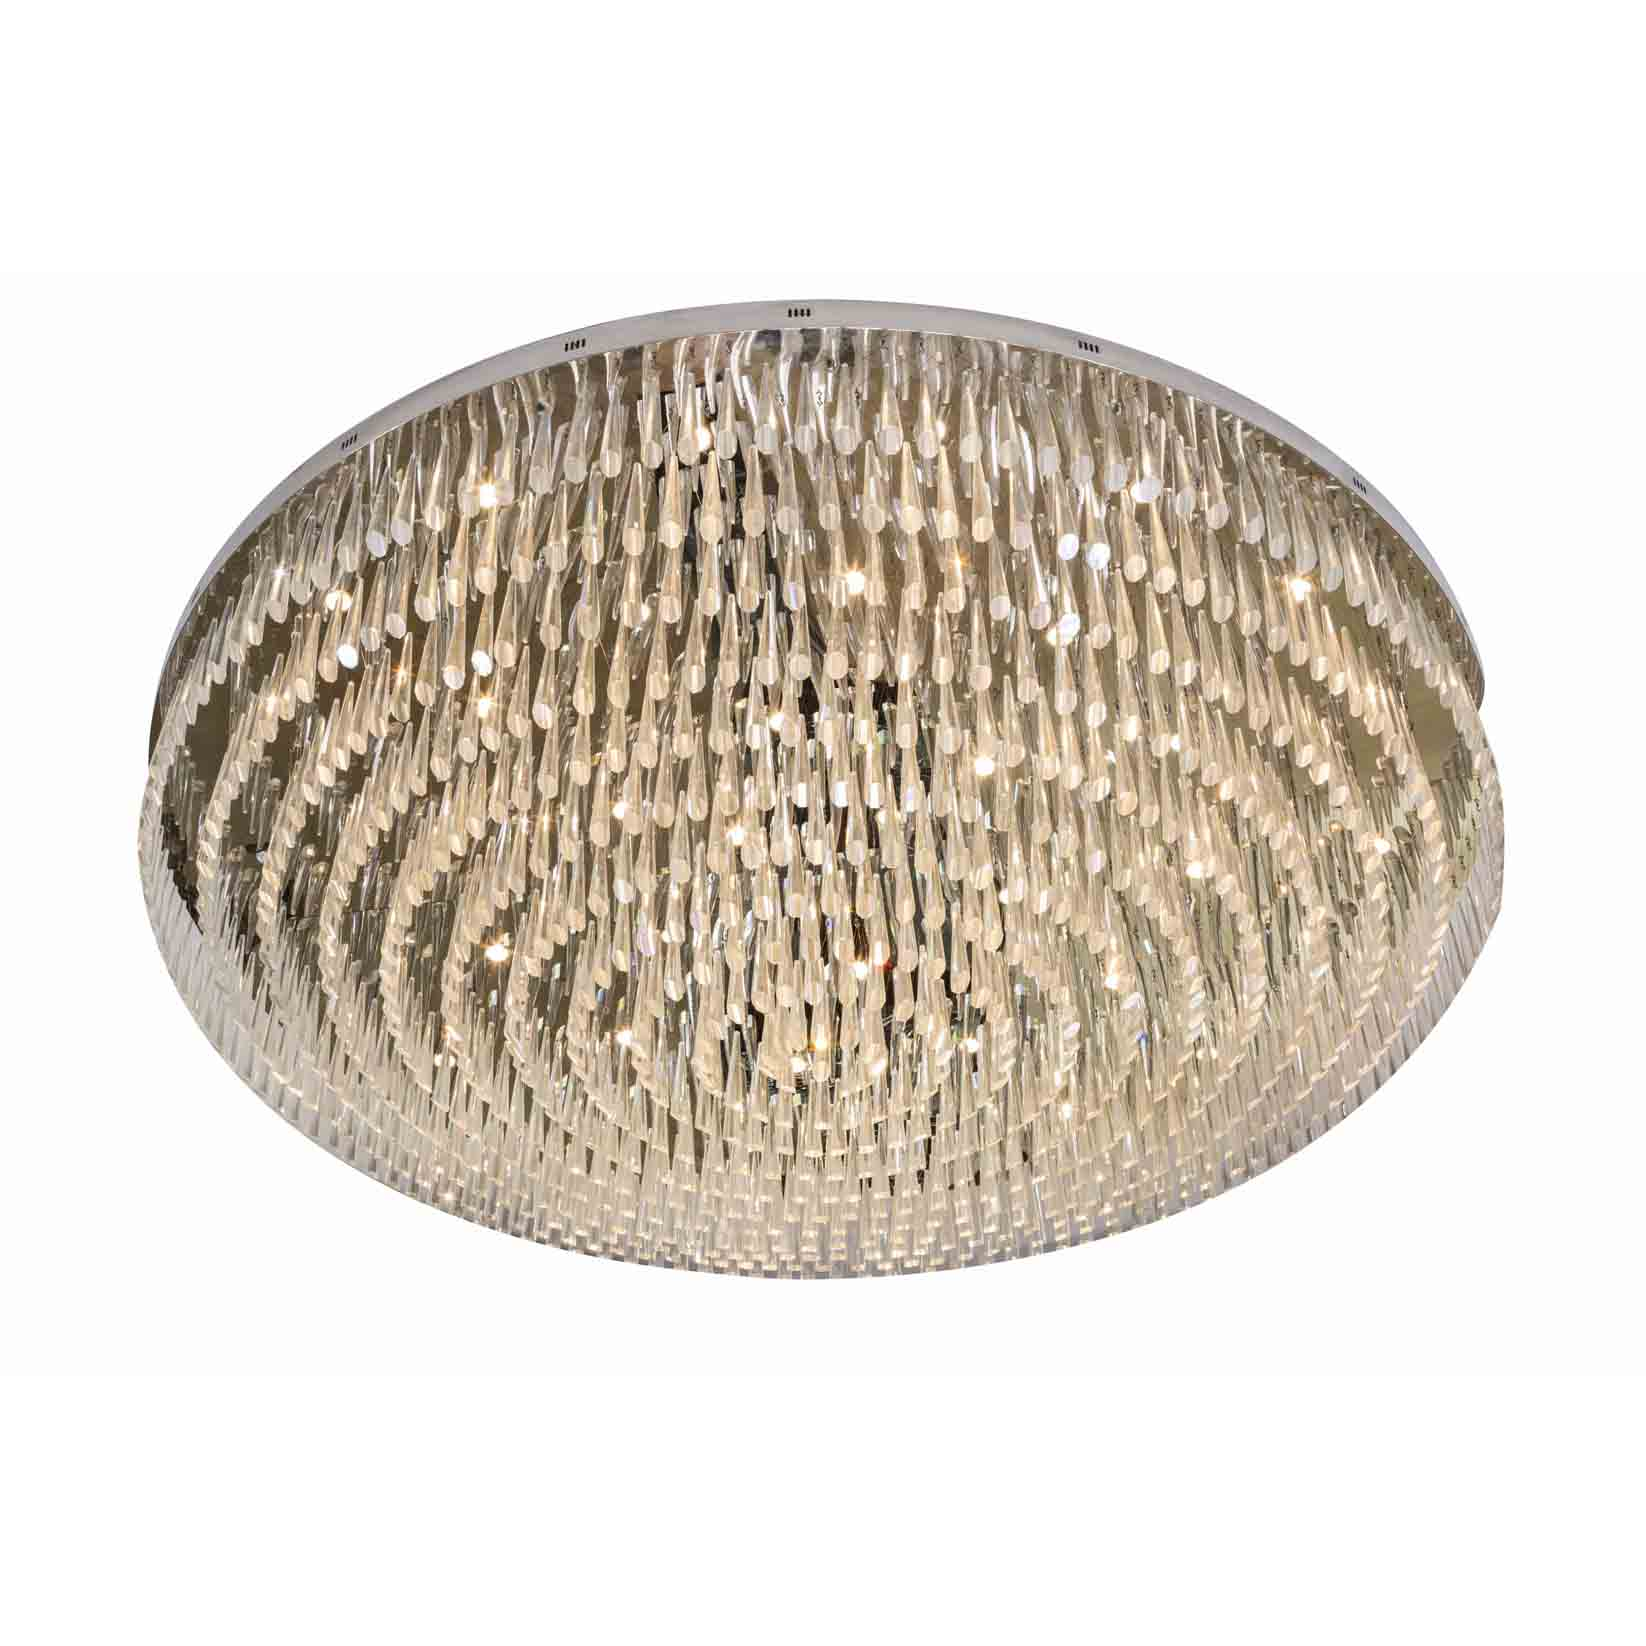 Round Crystal Chandelier (MX217-DX6606)